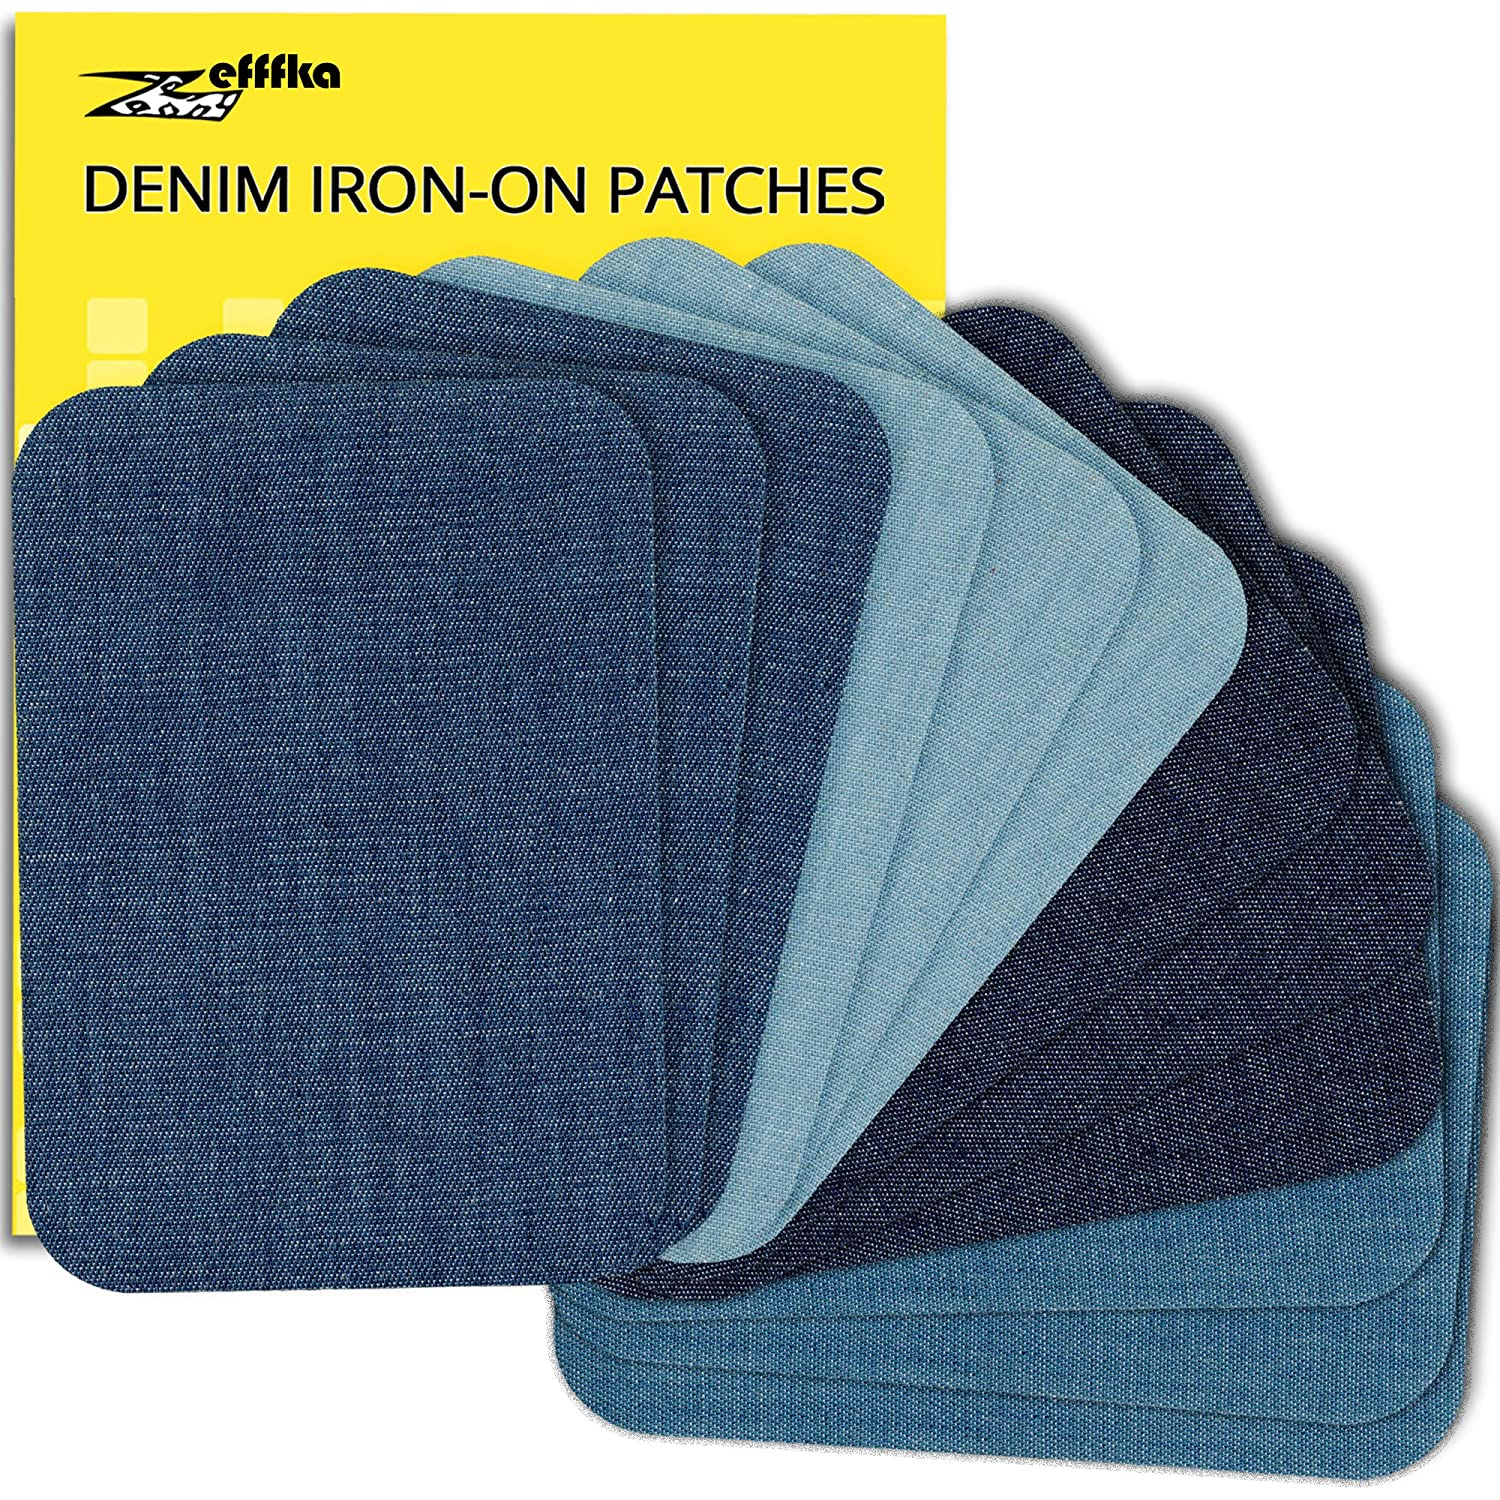 ZEFFFKA Premium Quality Denim Iron On Jean Patches Shades of Blue 12 Pieces Cotton Jeans Repair Kit 3